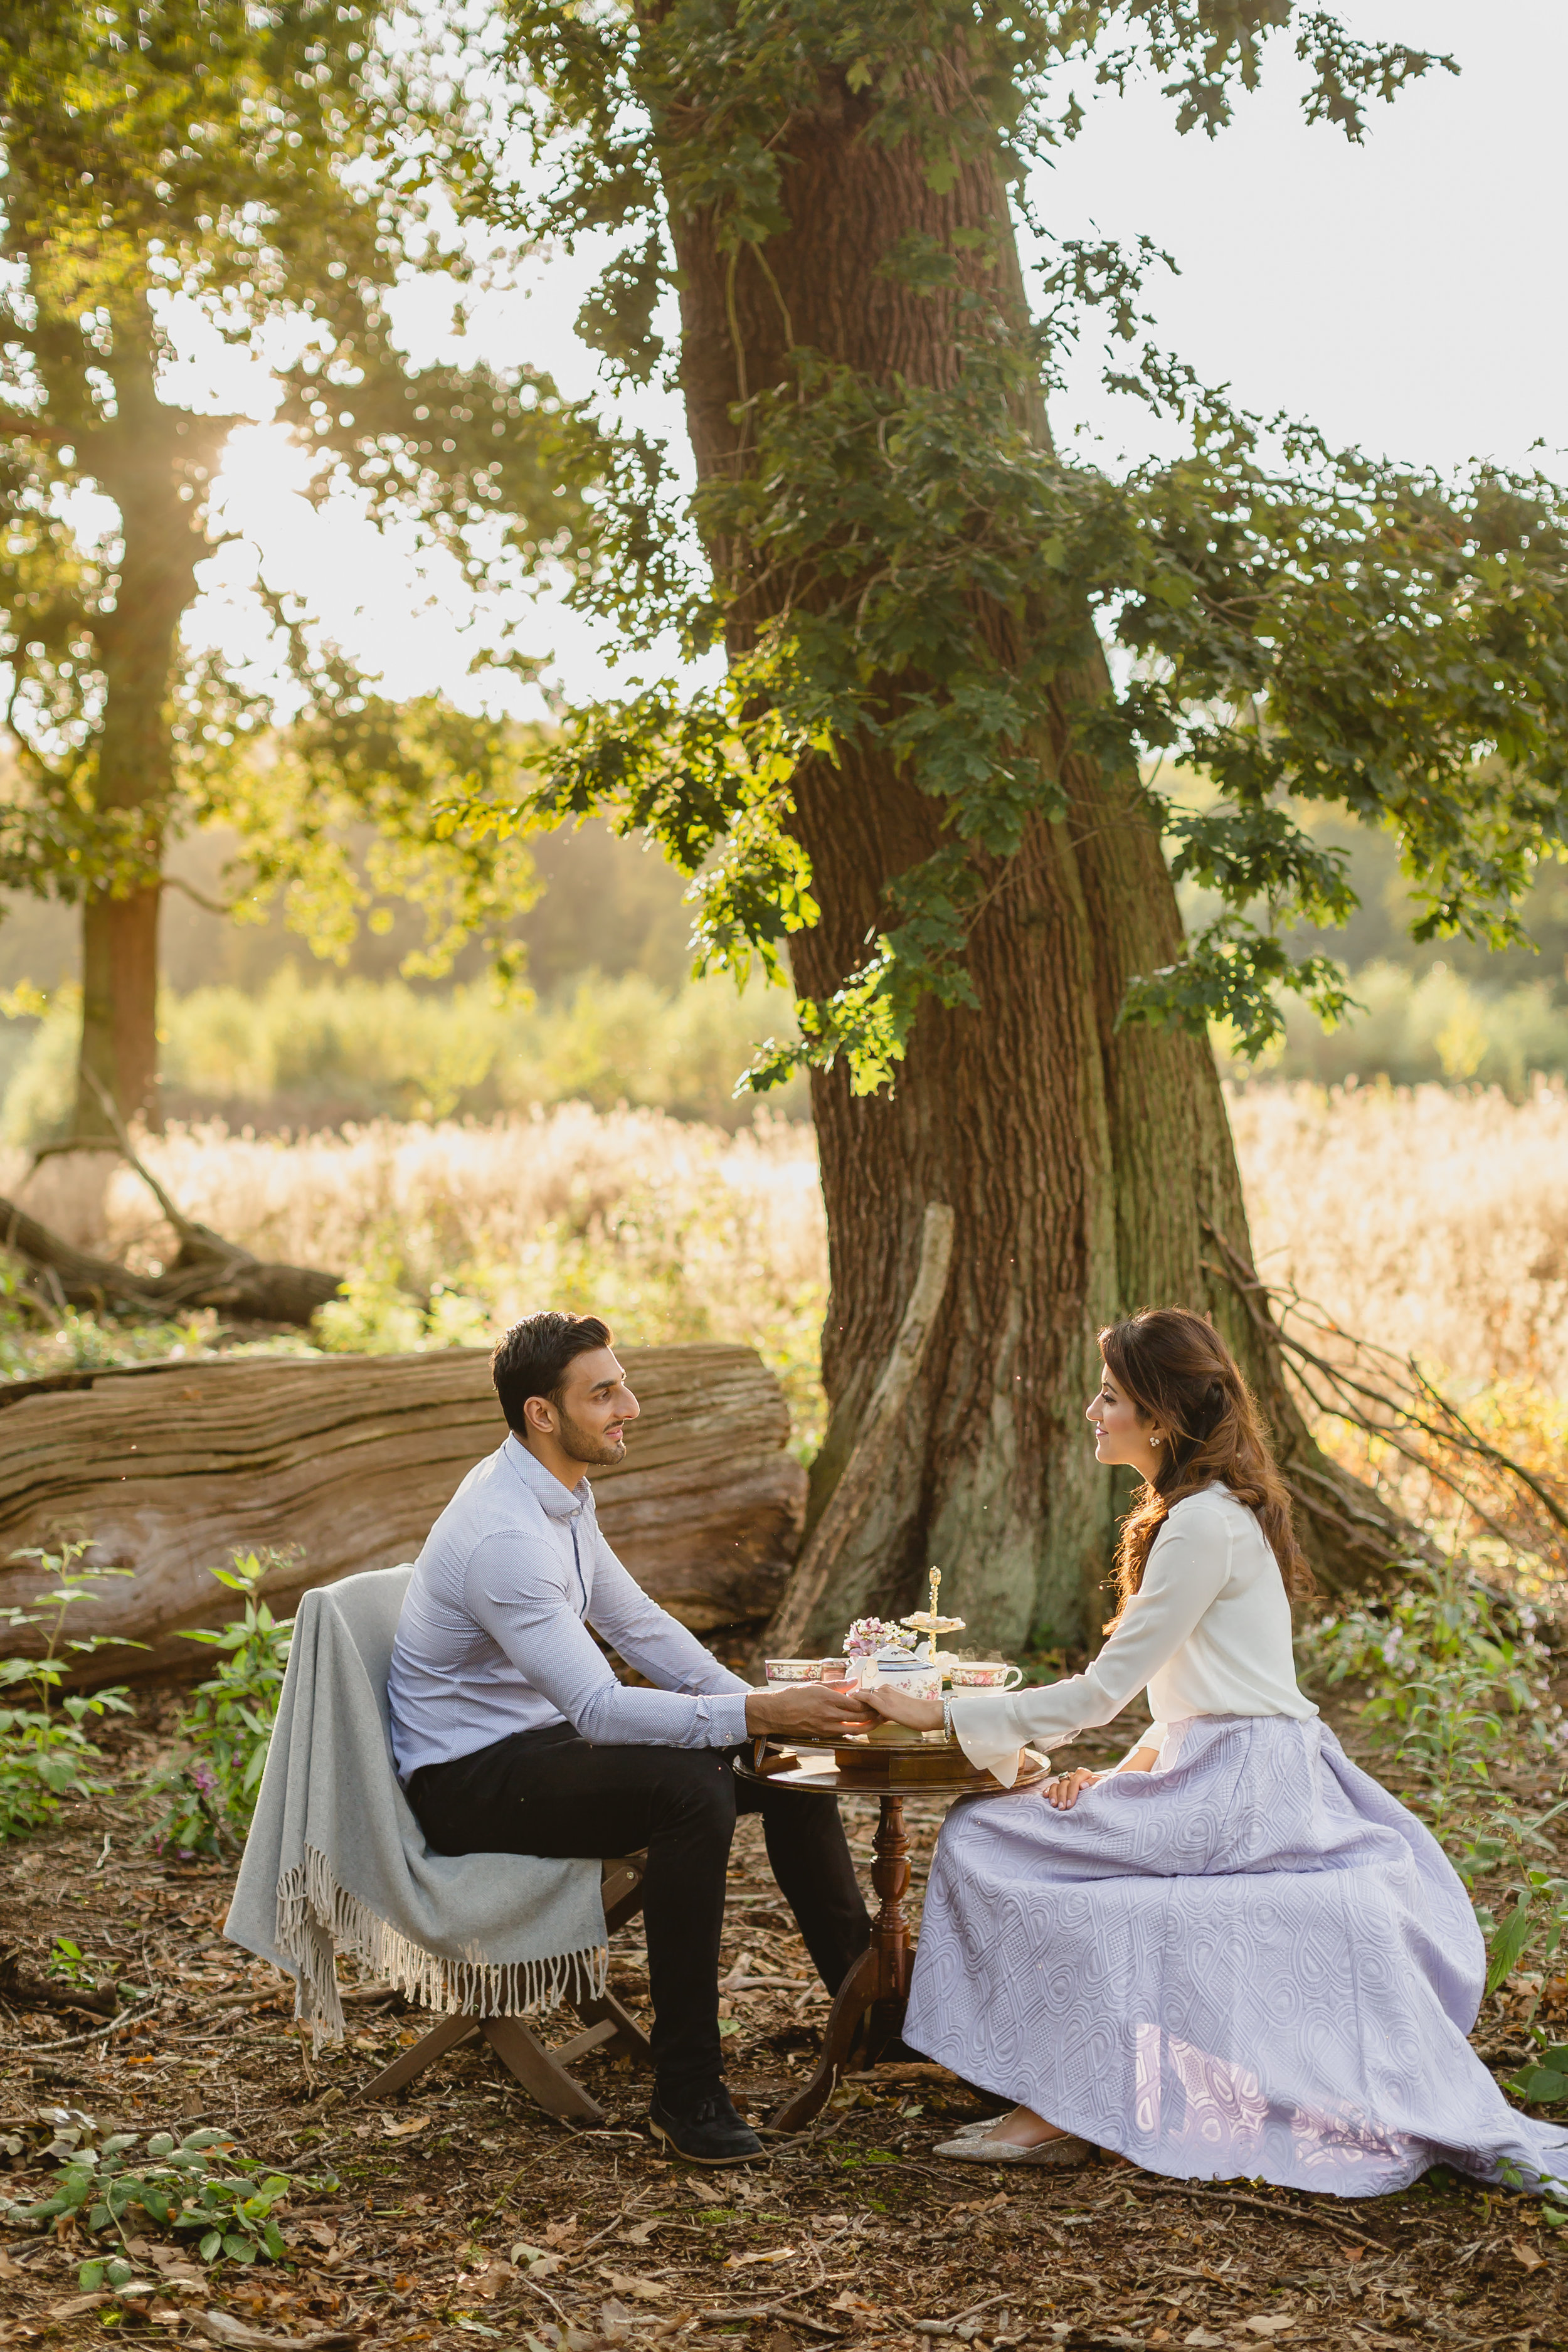 pakistani tea party engagement shoot